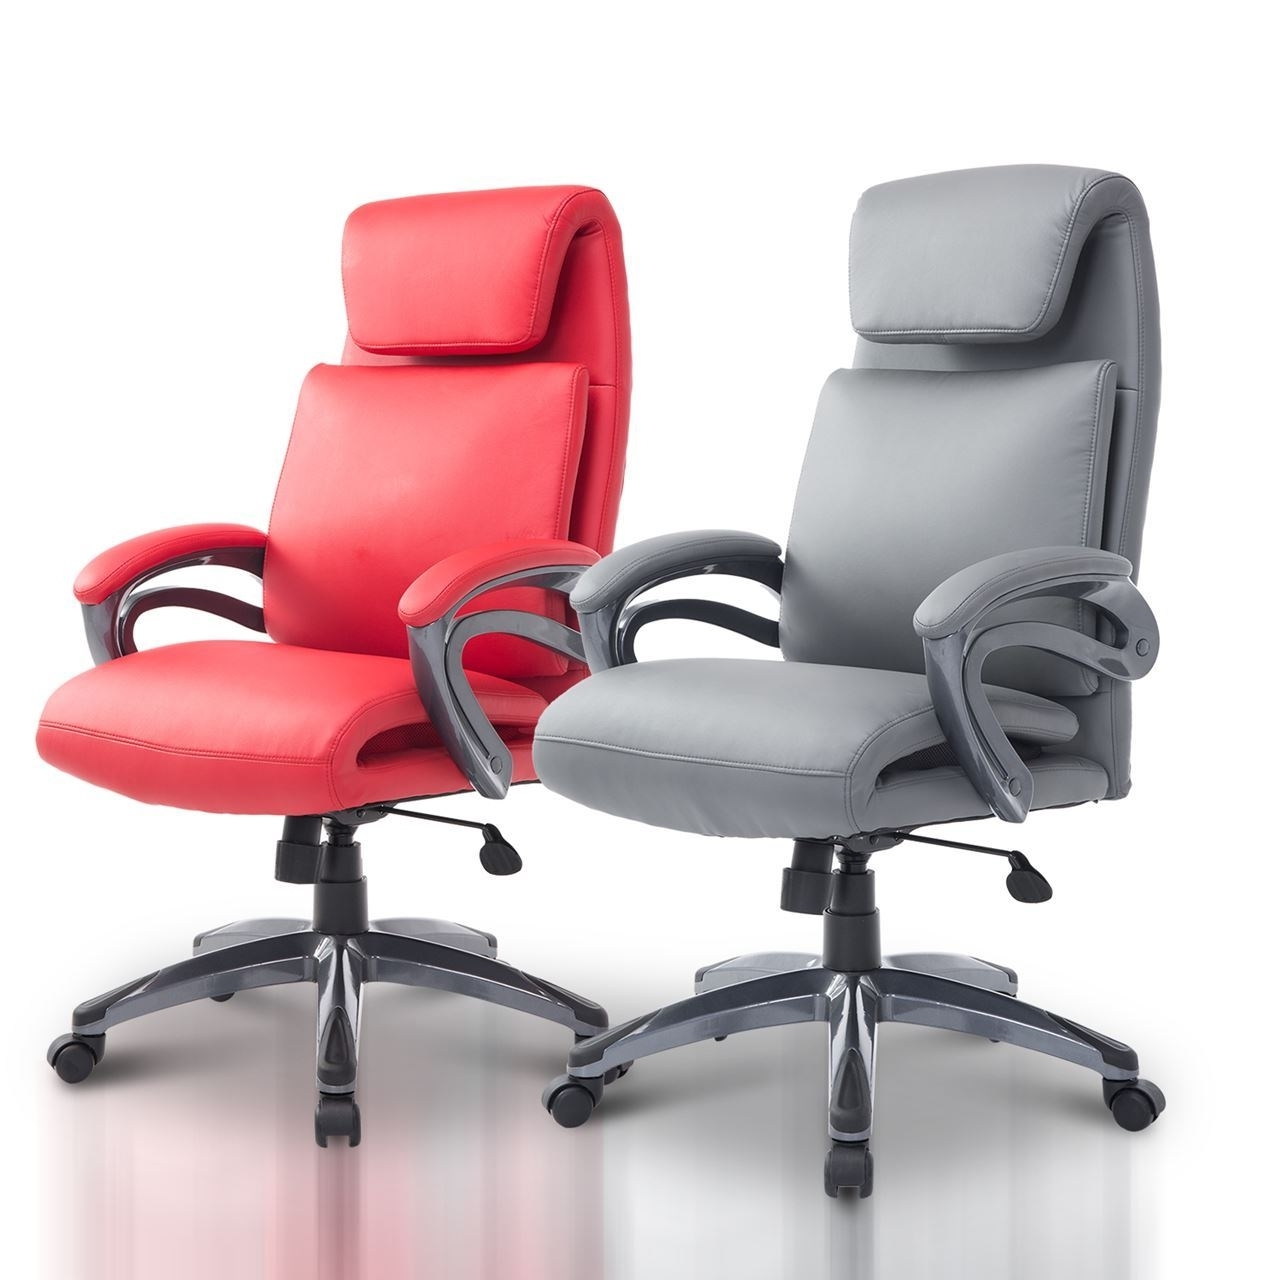 Ergonomic Executive Office Chair Pu Leather (View 9 of 20)